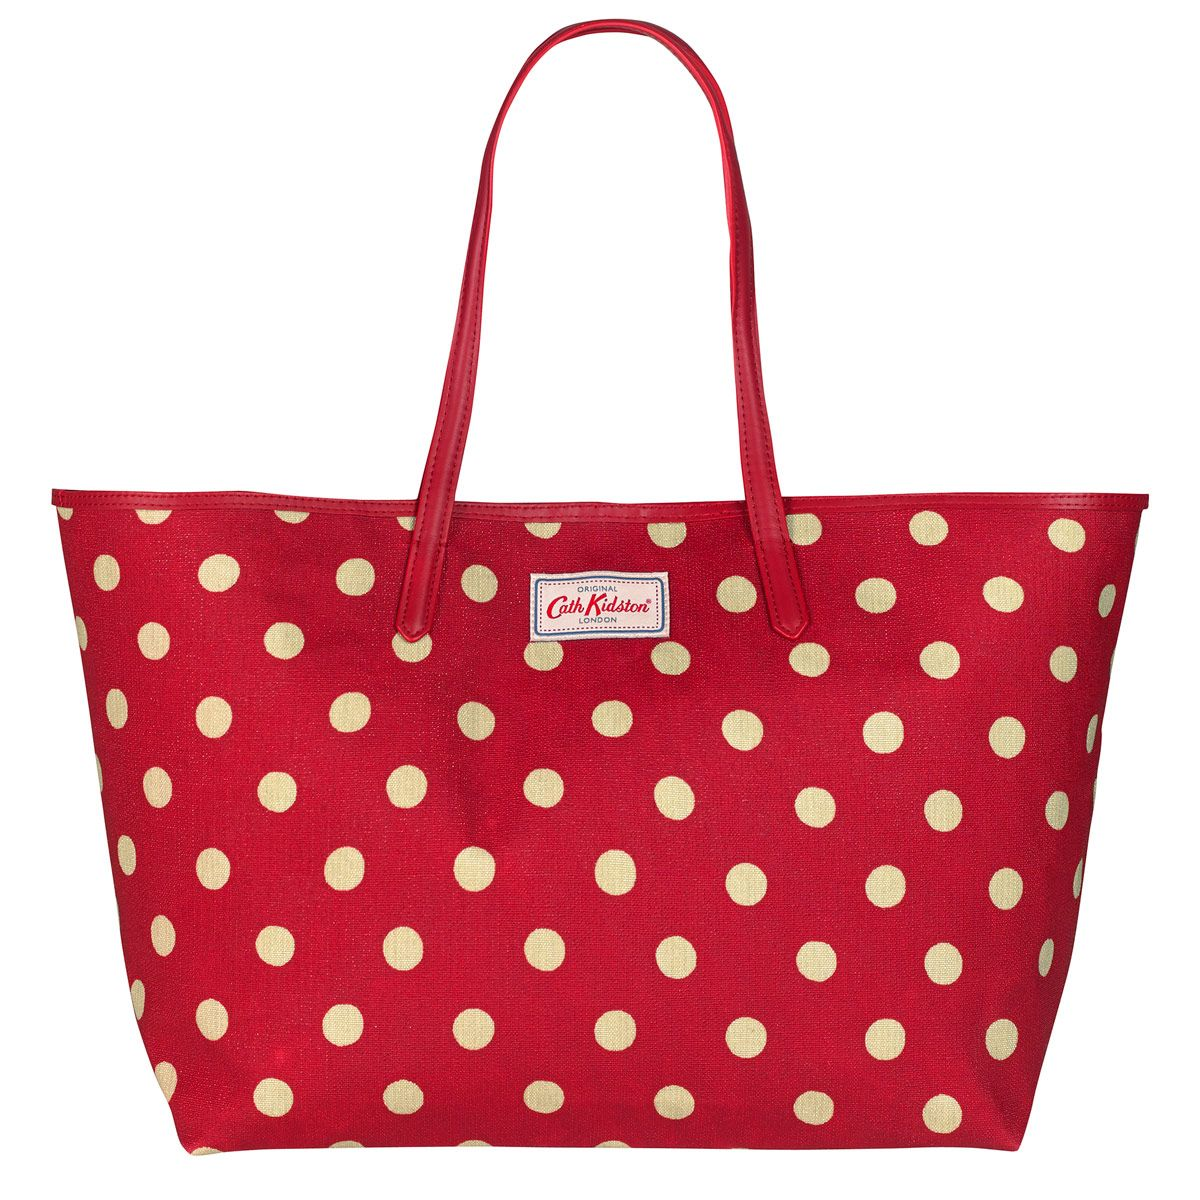 2019 discount sale hot-selling genuine clear-cut texture Button Spot Large Leather Trim Tote | Cath Kidston | | cath ...